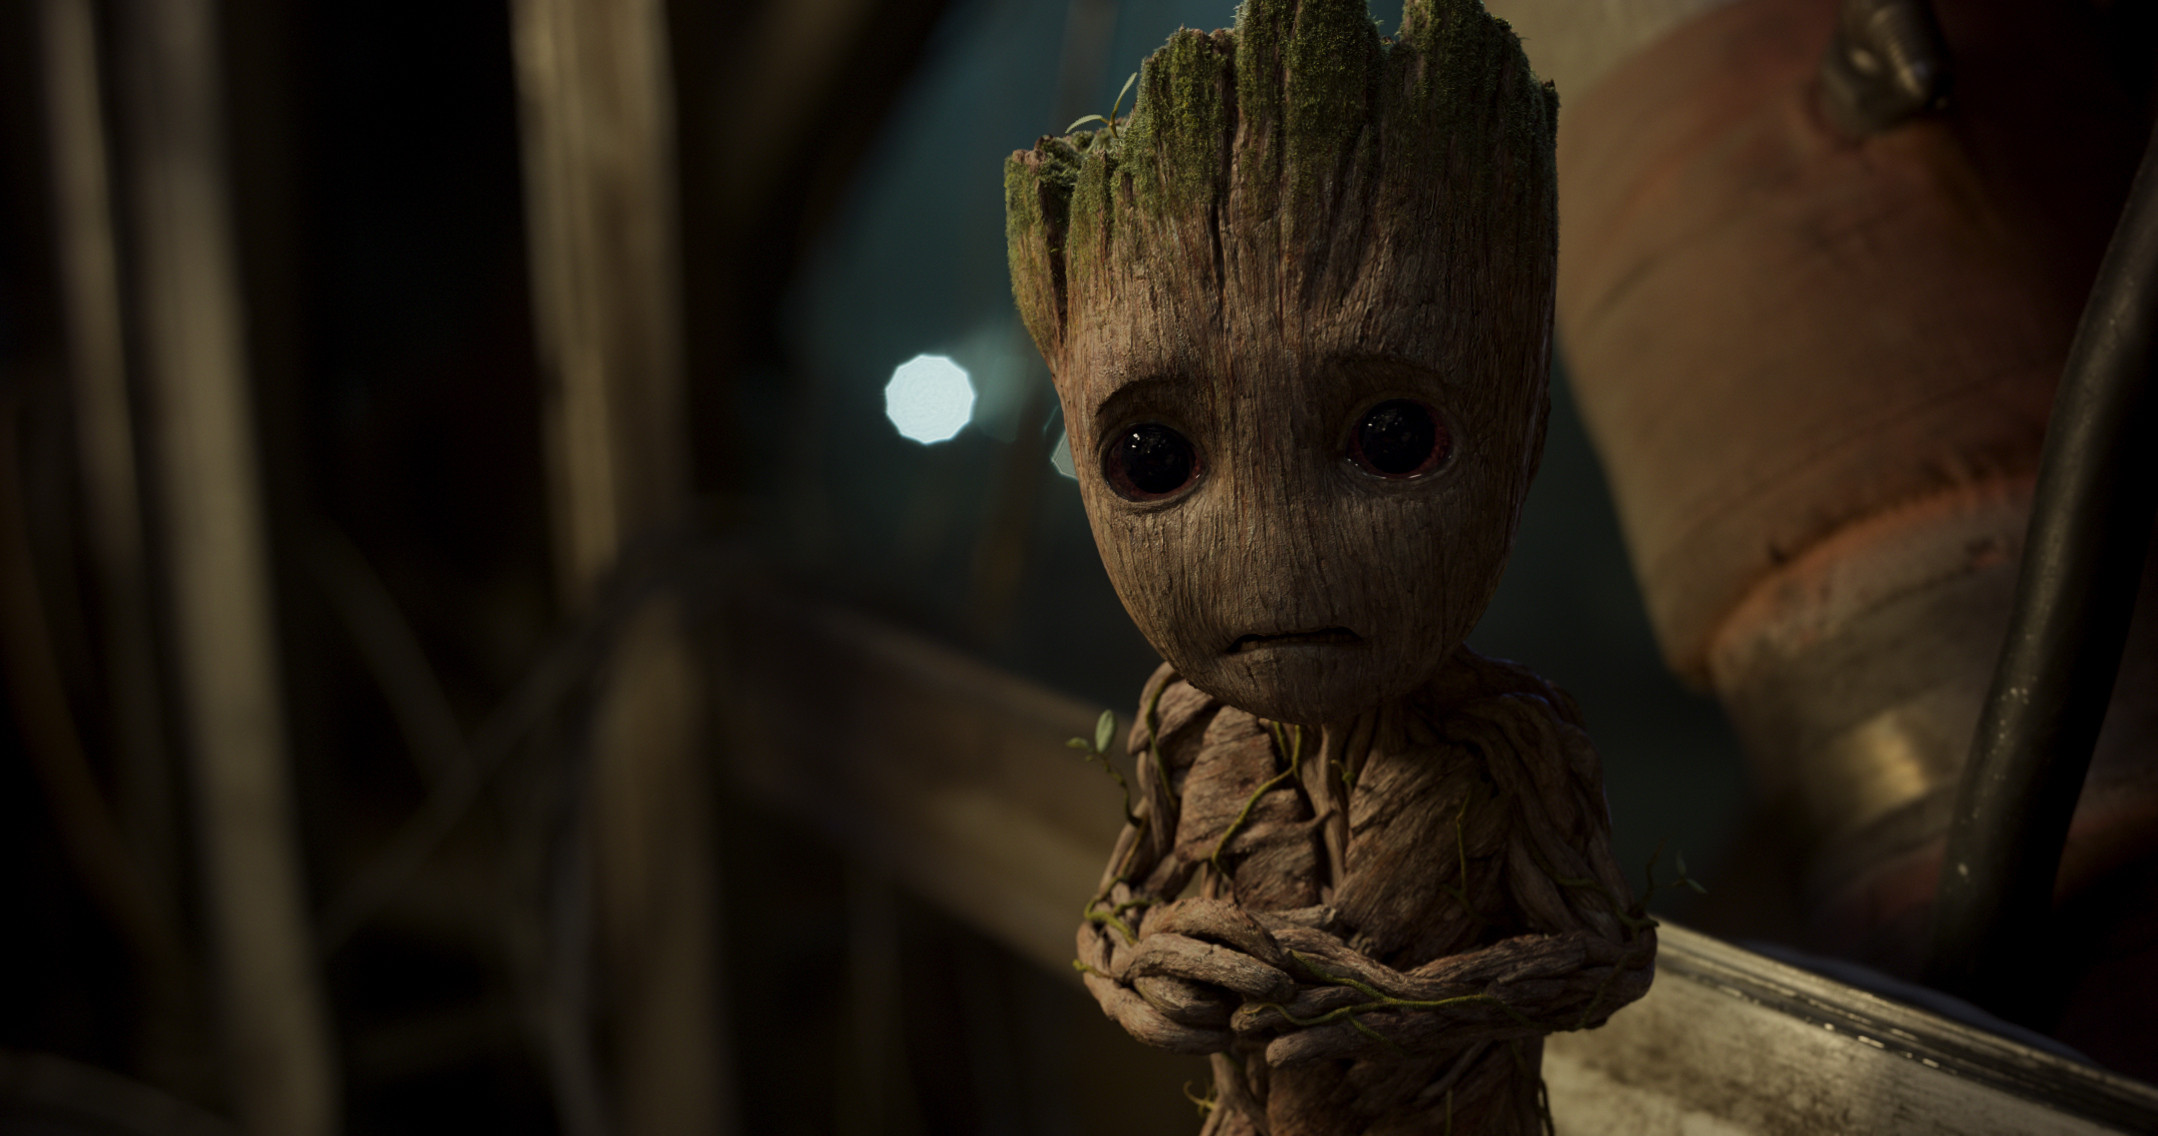 Baby Groot Guardians Of The Galaxy Vol 2 Hd Movies 4k: Baby Groot In Guardians Of The Galaxy Vol 2, HD Movies, 4k